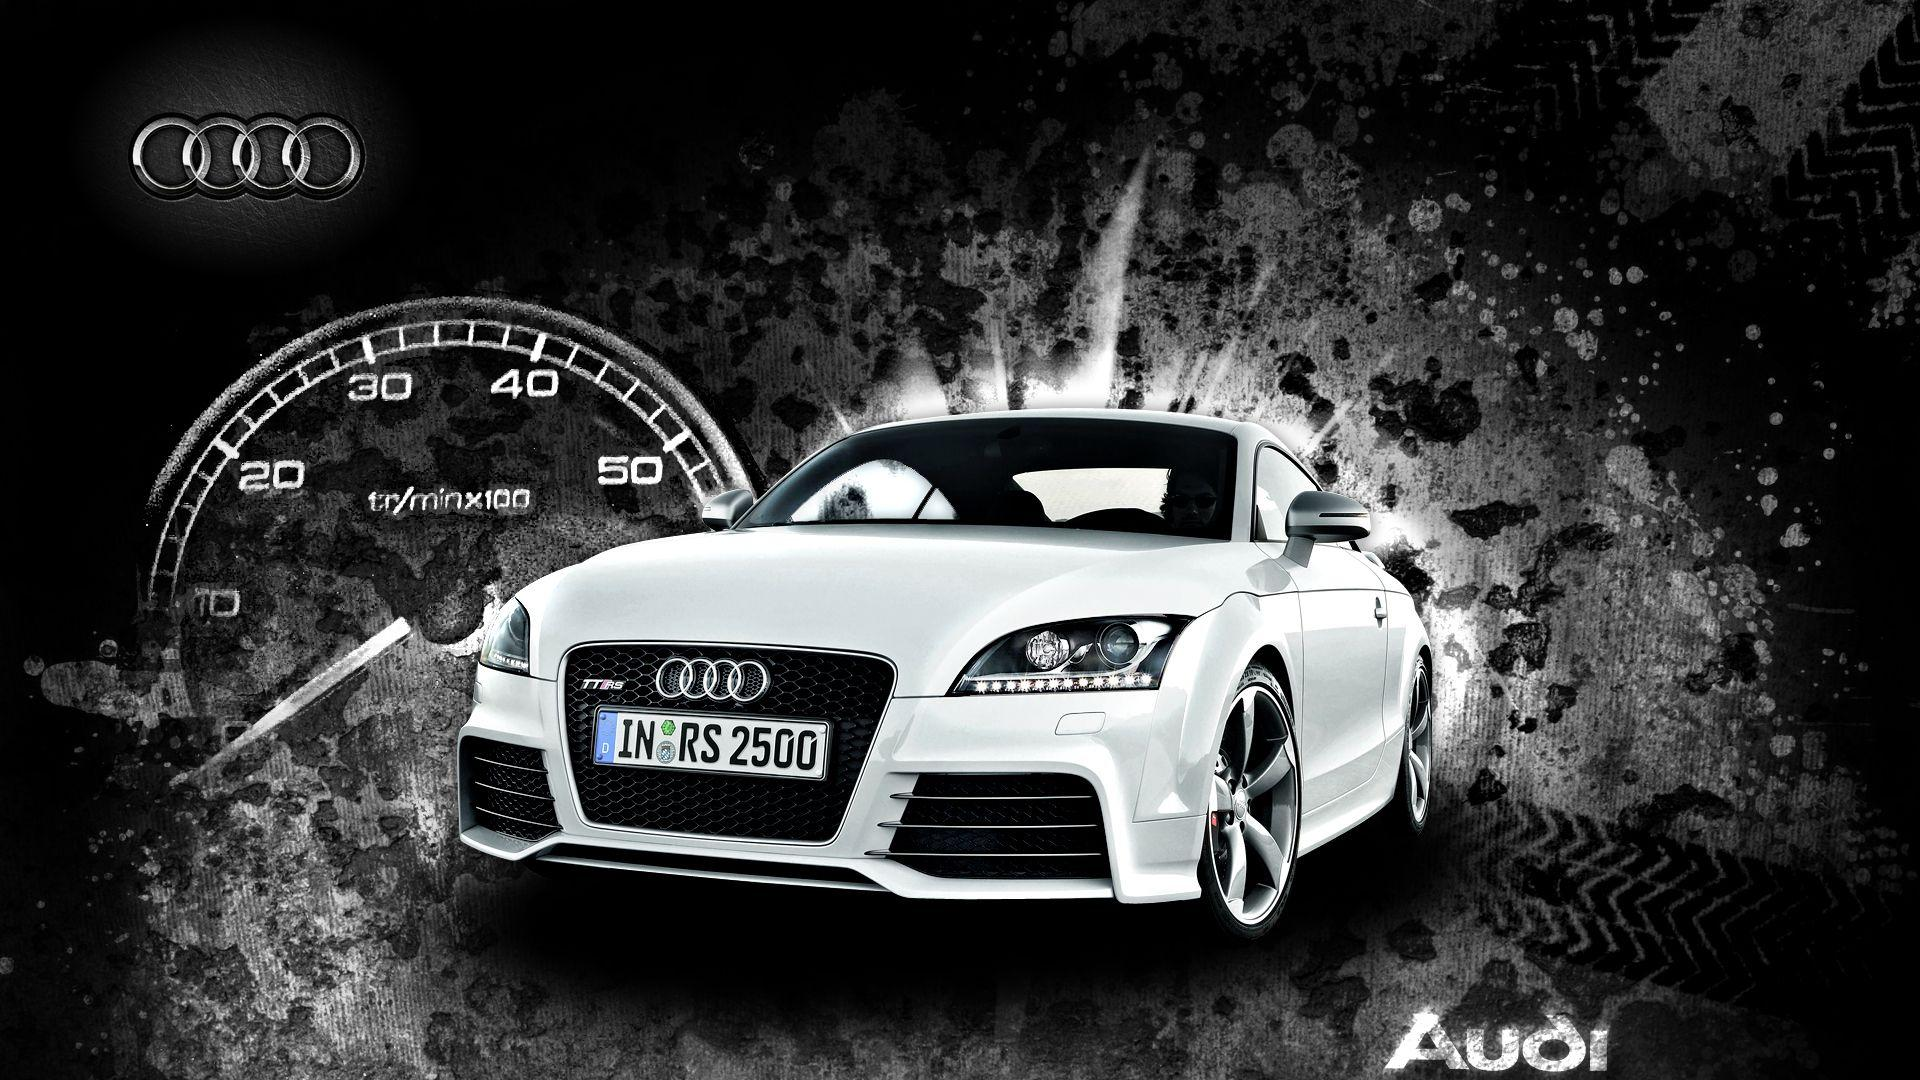 The Audi TT Forum • View topic